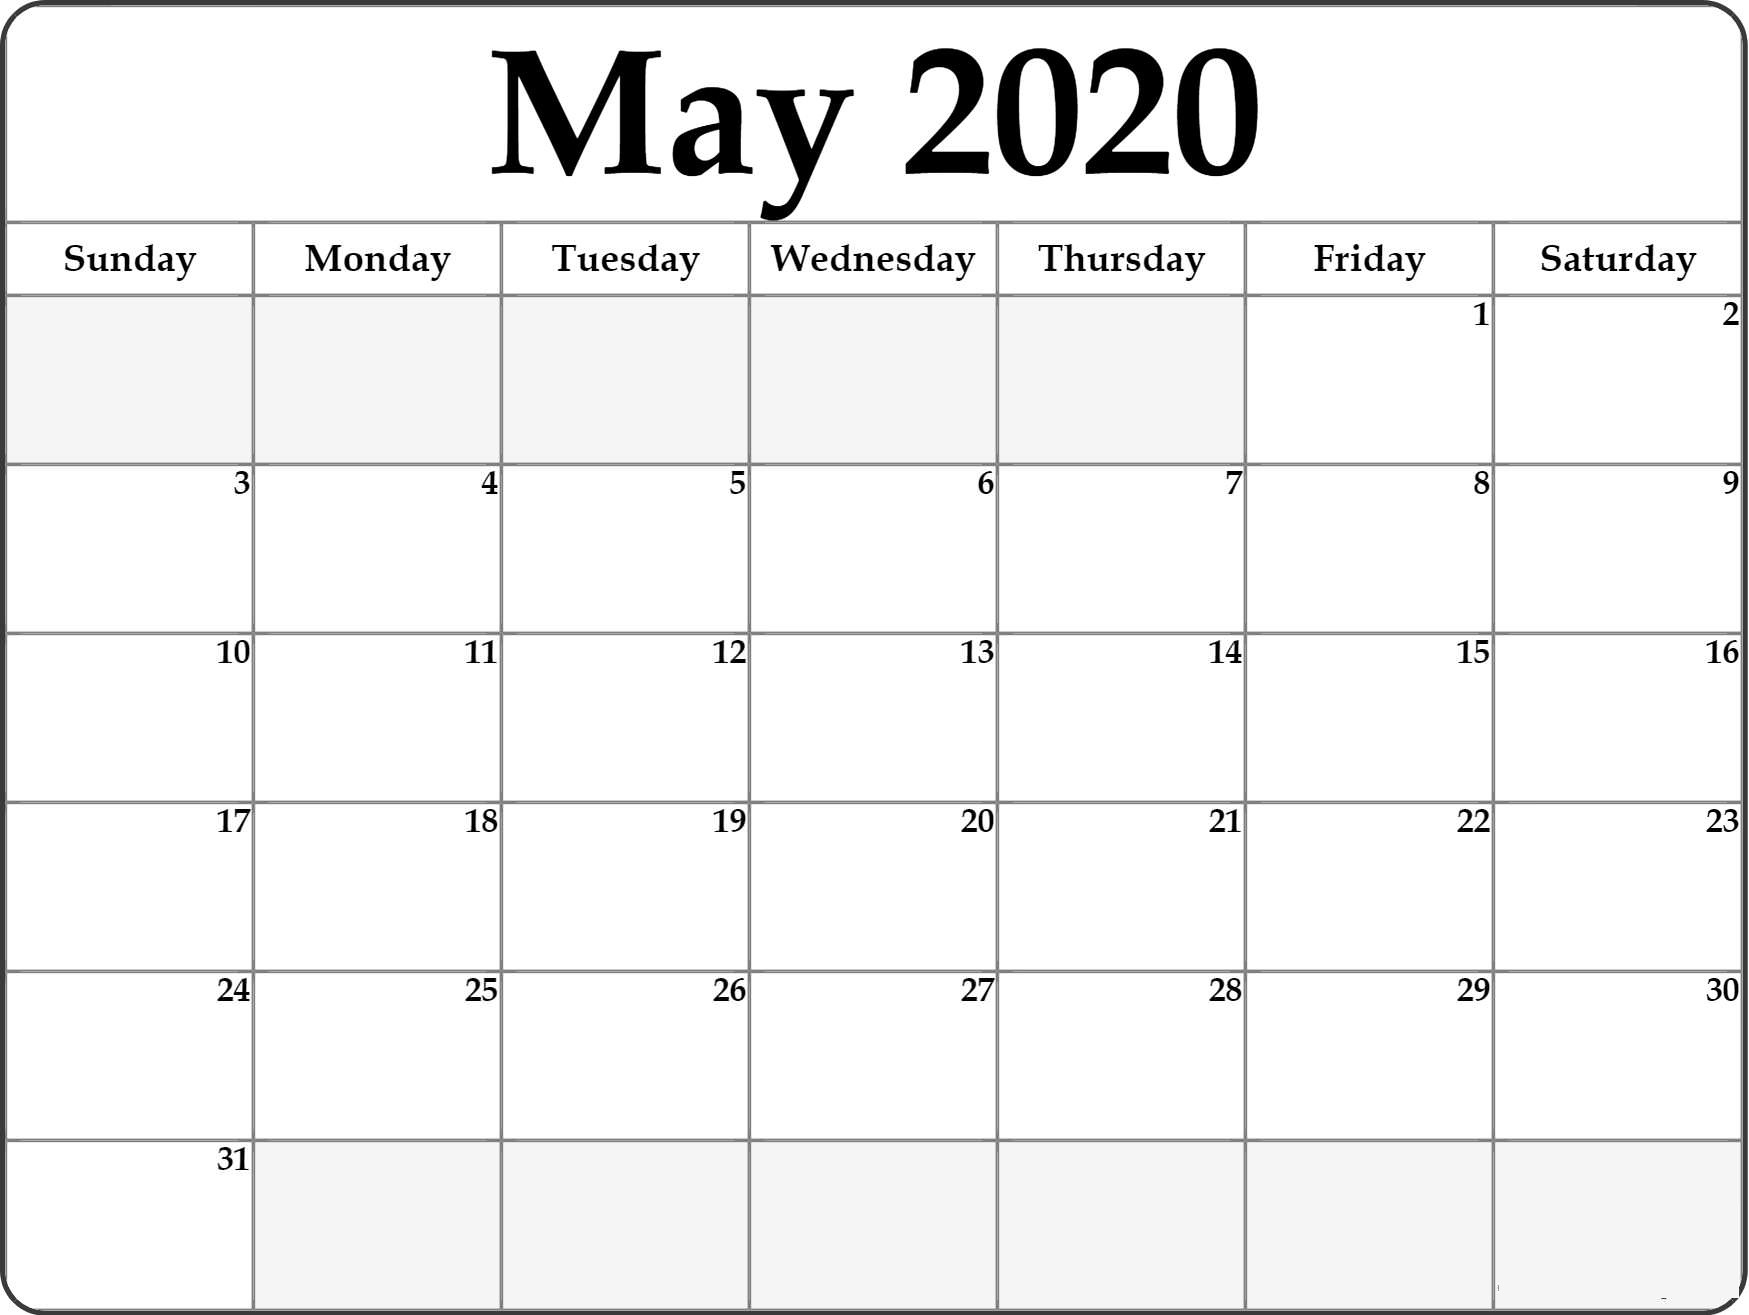 May 2020 Calendar Printable : 5 Best Template For Daily Use